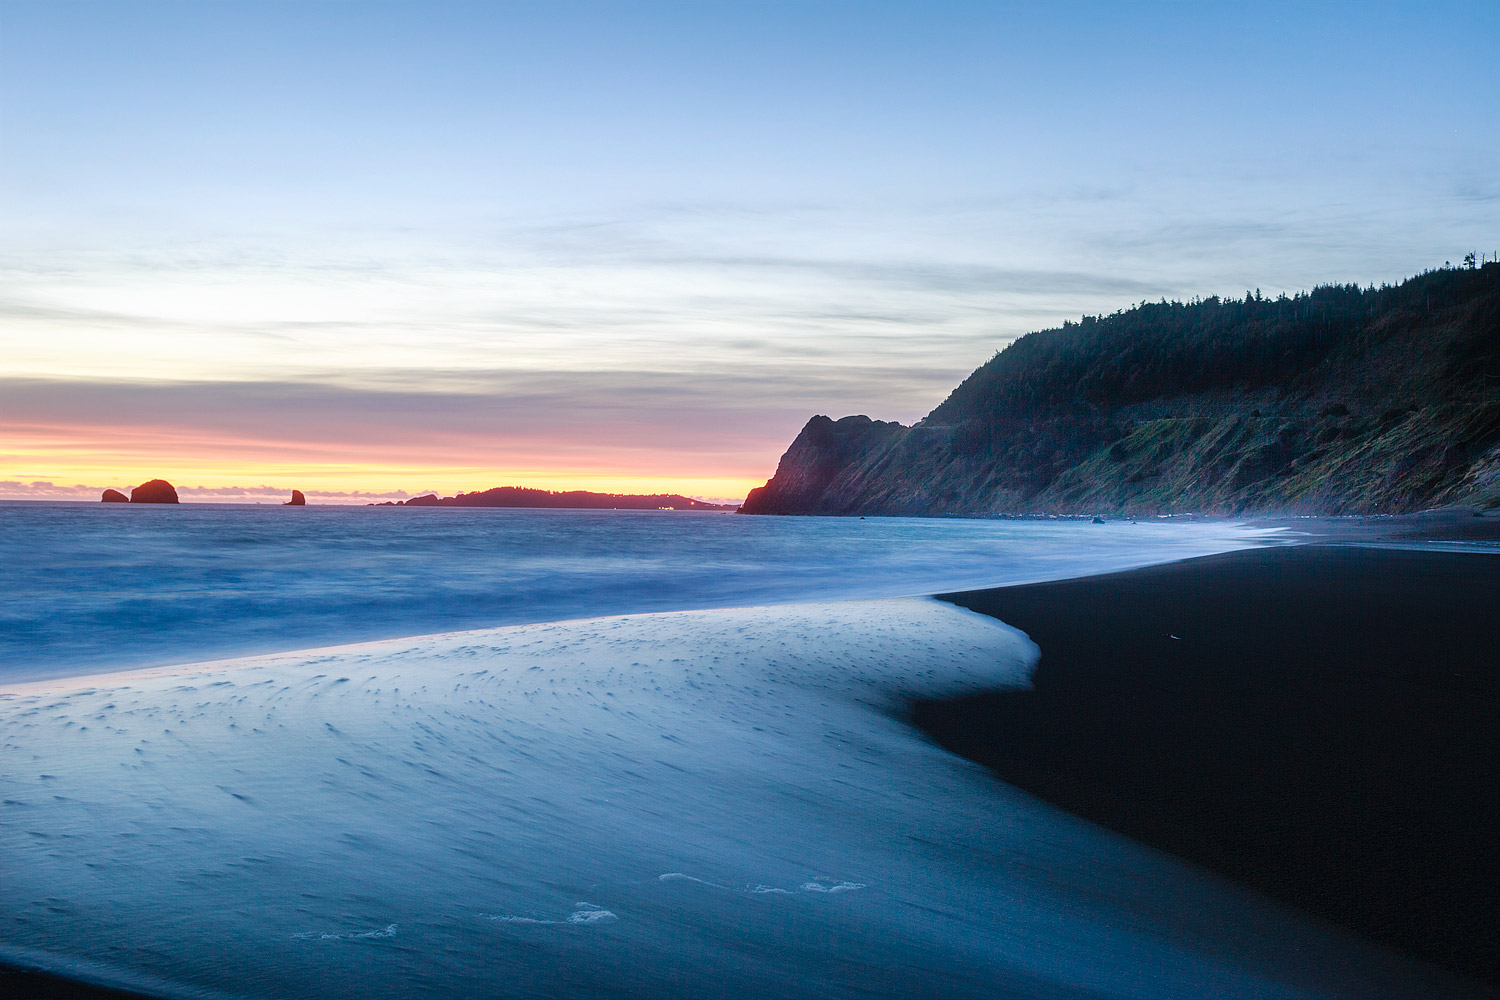 Waves on the beach at Humbug Mountain, Oregon